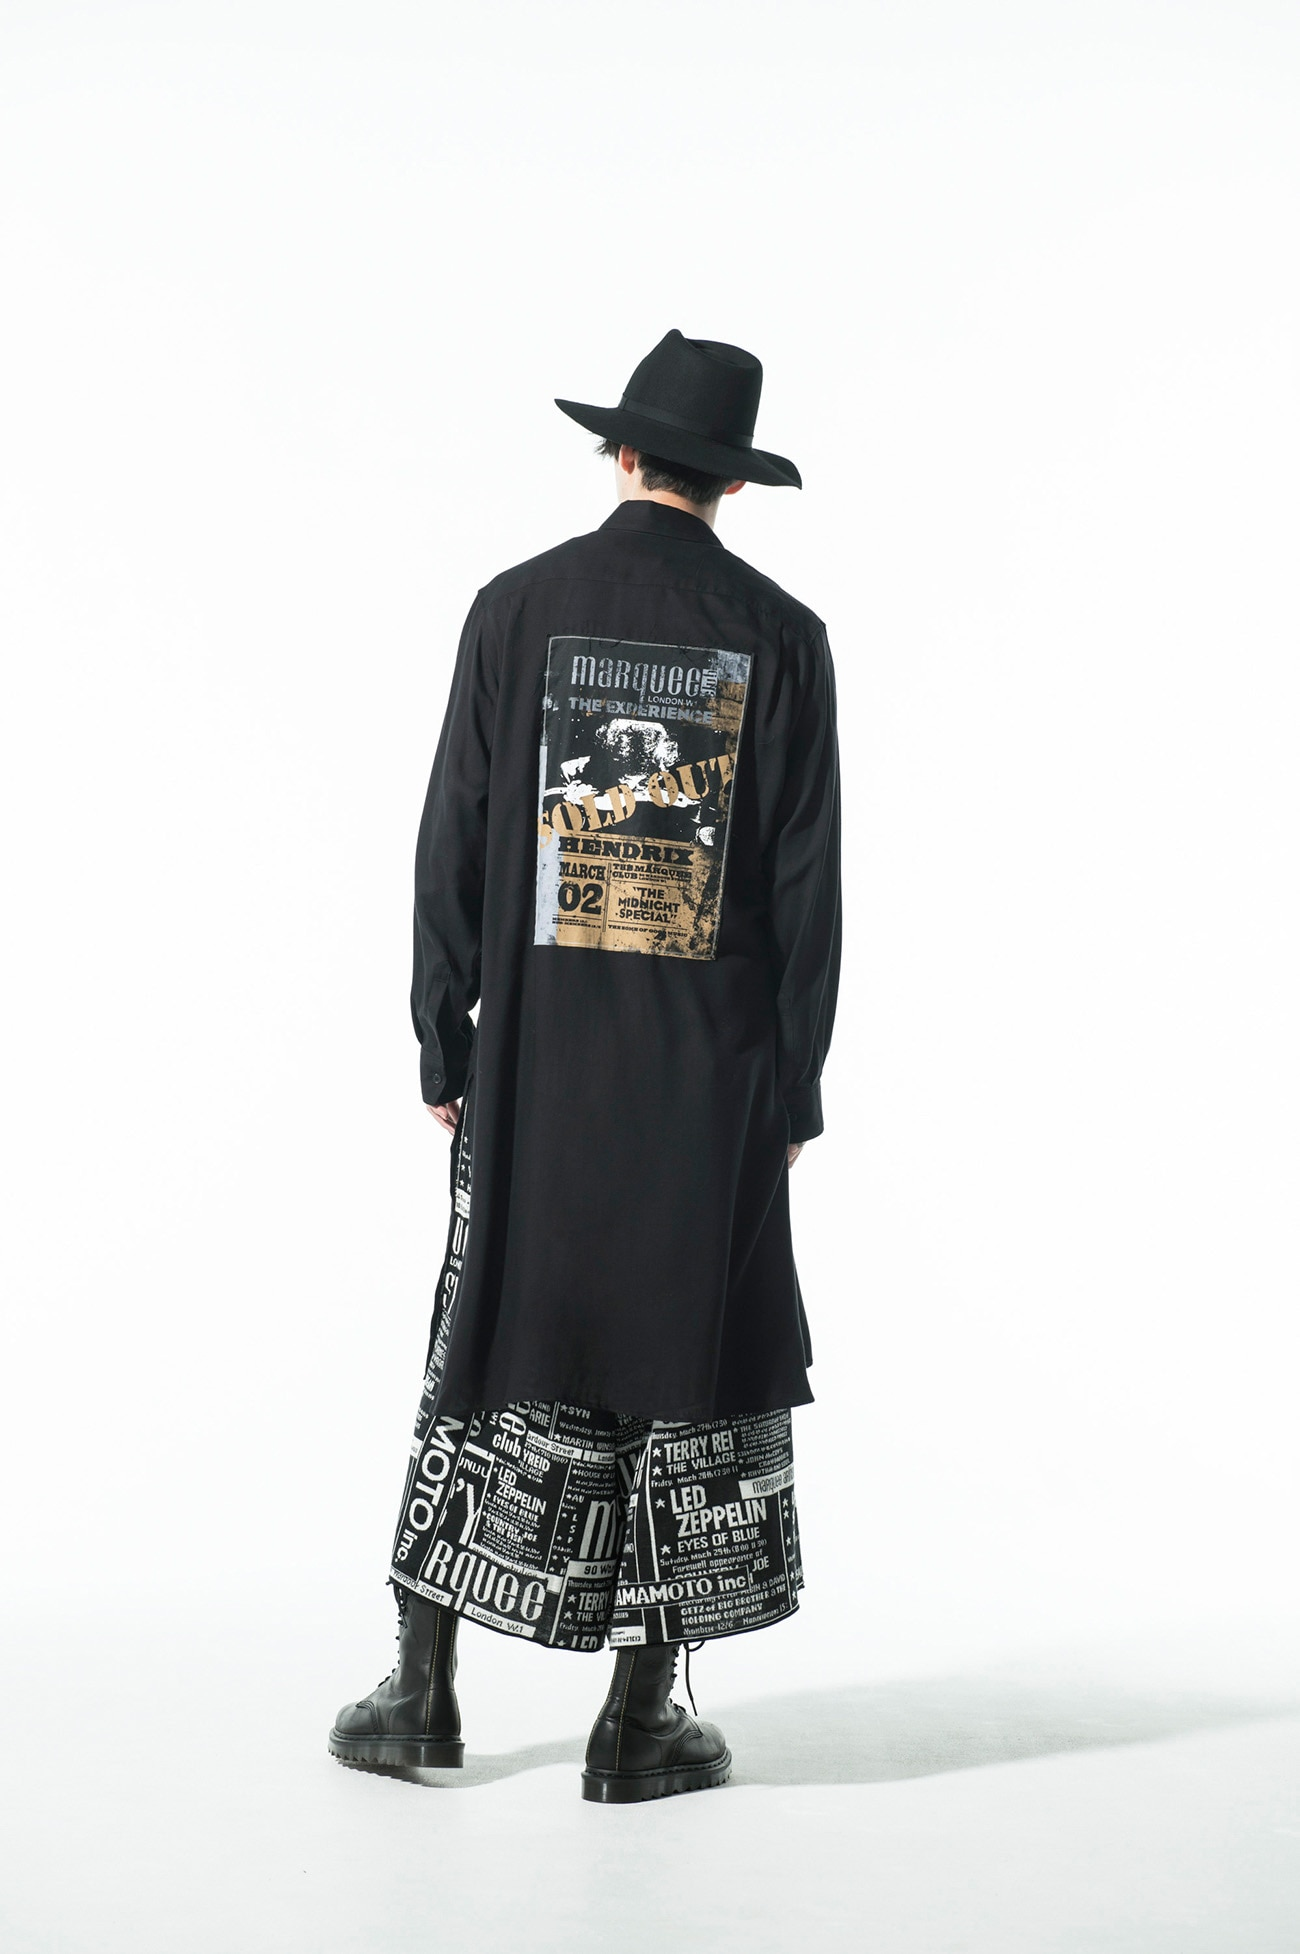 S'YTE × marquee club(TM) 1967 Tencel Viera Omnibus Printed Patch Long Shirt